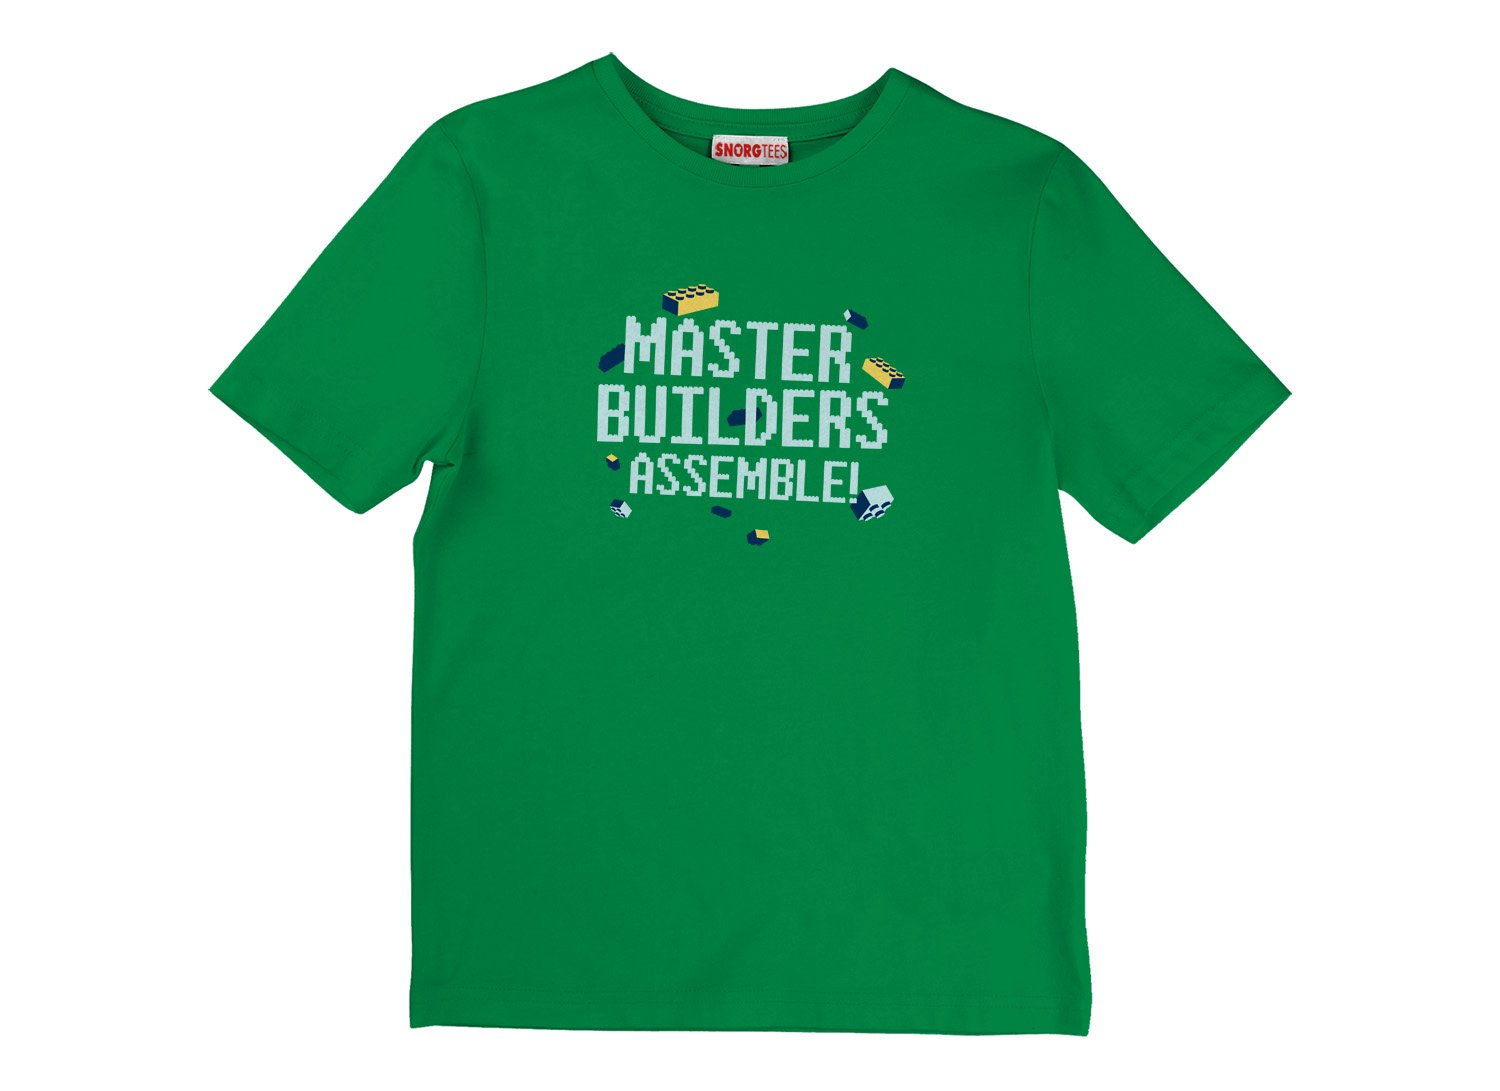 Master Builders Assemble! on Kids T-Shirt